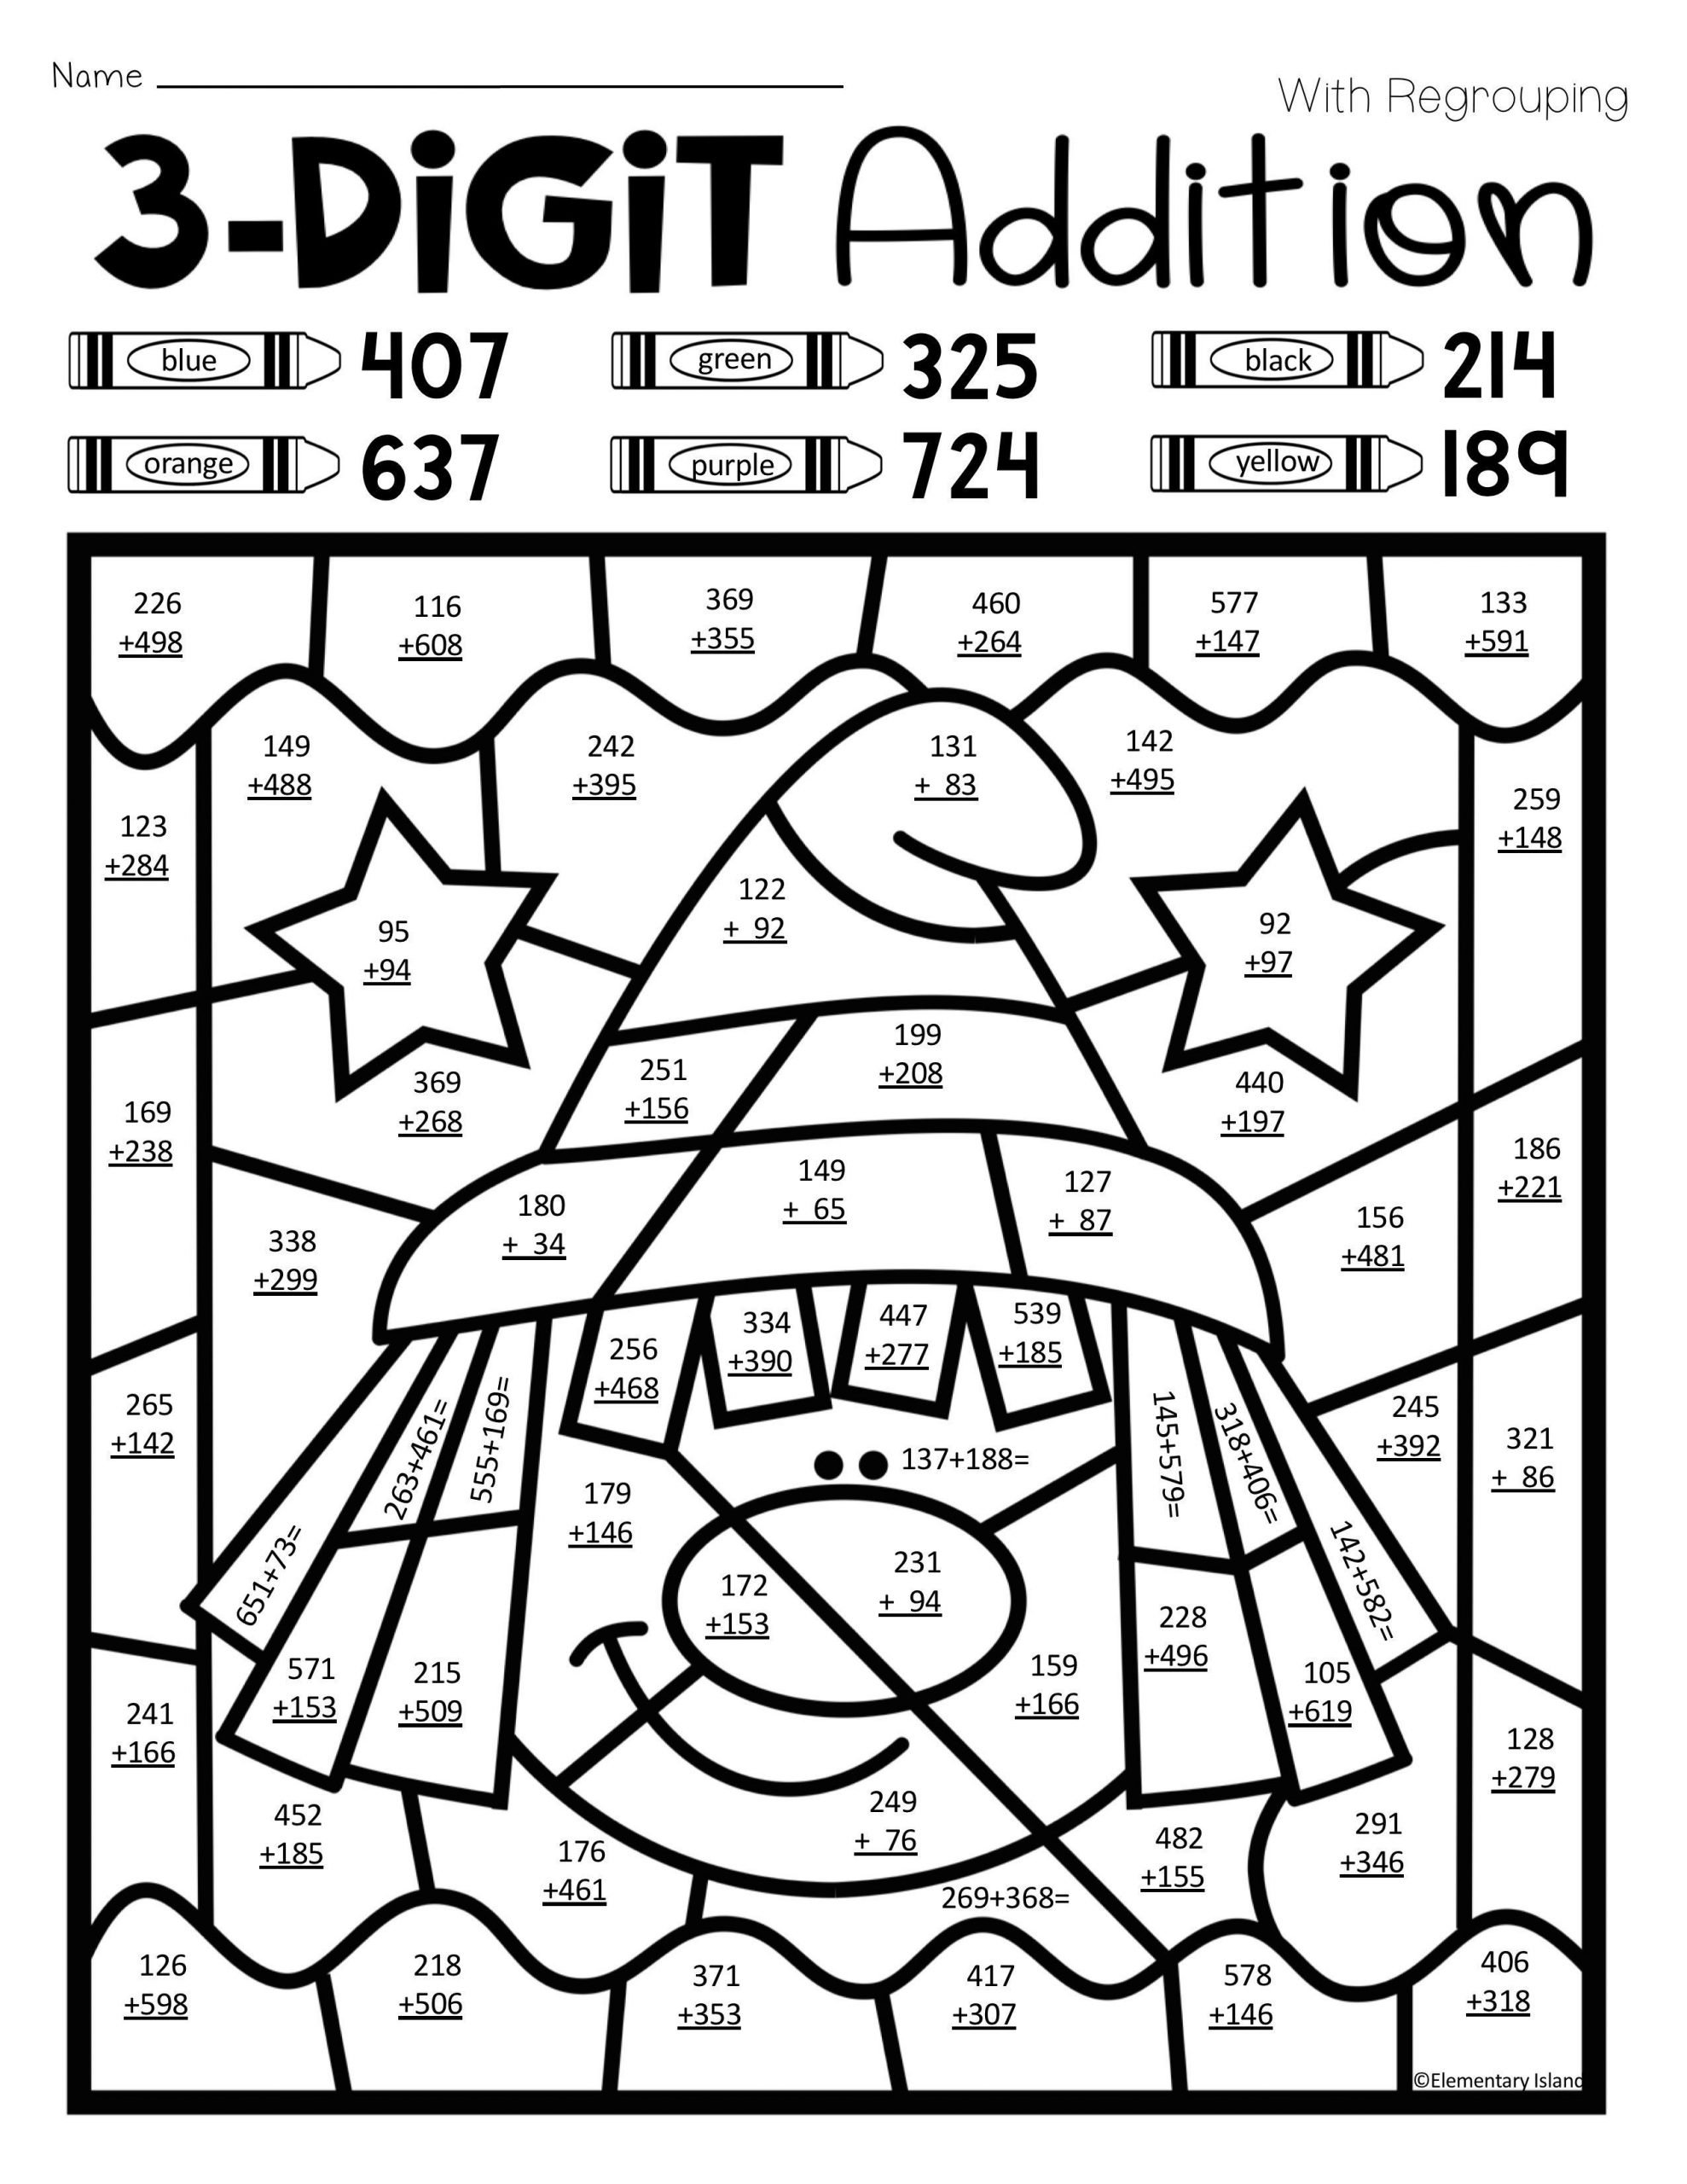 Fun Subtraction with Regrouping Worksheets Halloween Three Digit Addition Color by Number with and